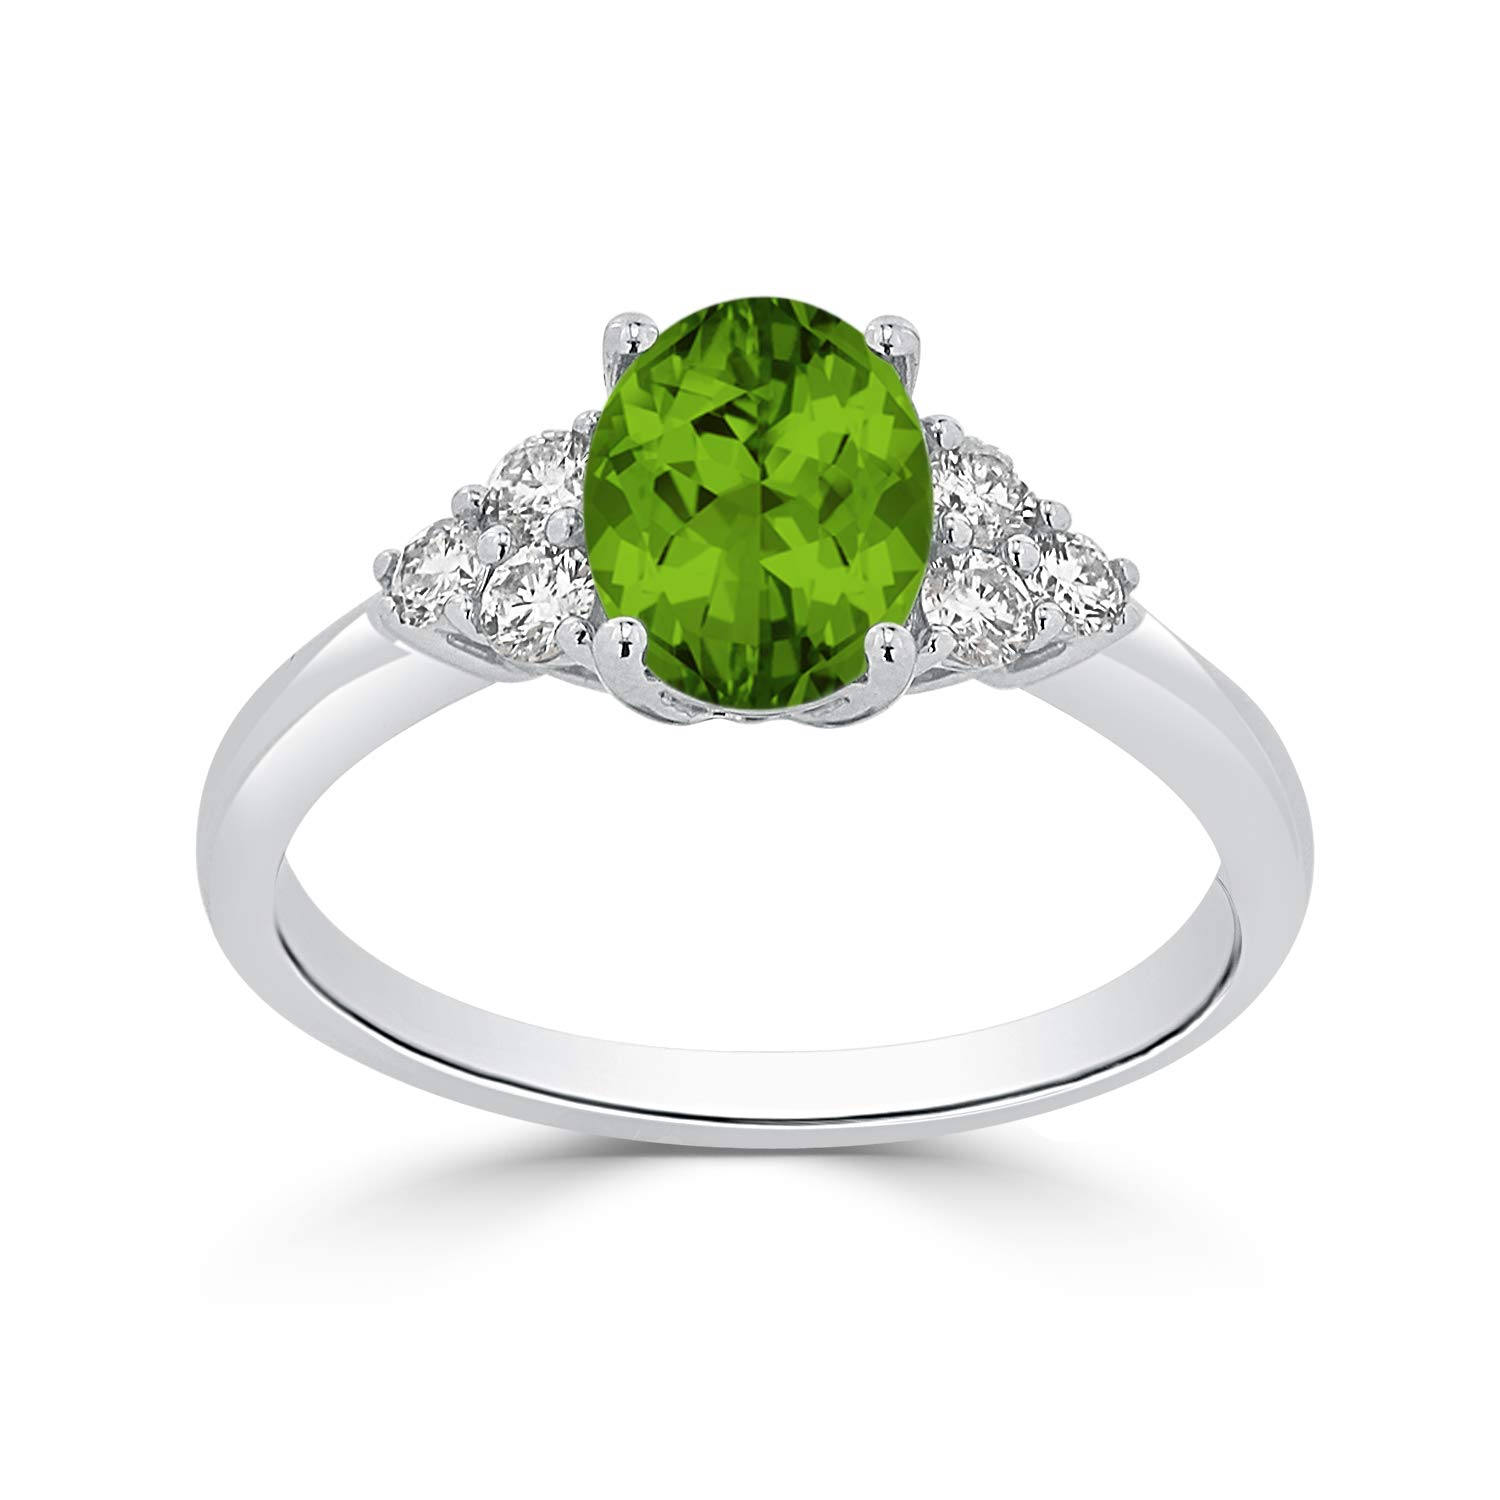 Diamond Wish 14k White Gold Diamond Engagement Ring with 1 ct Oval-Cut Peridot Gemstone and 1/4 ct TDW, Size 5 by Diamond Wish